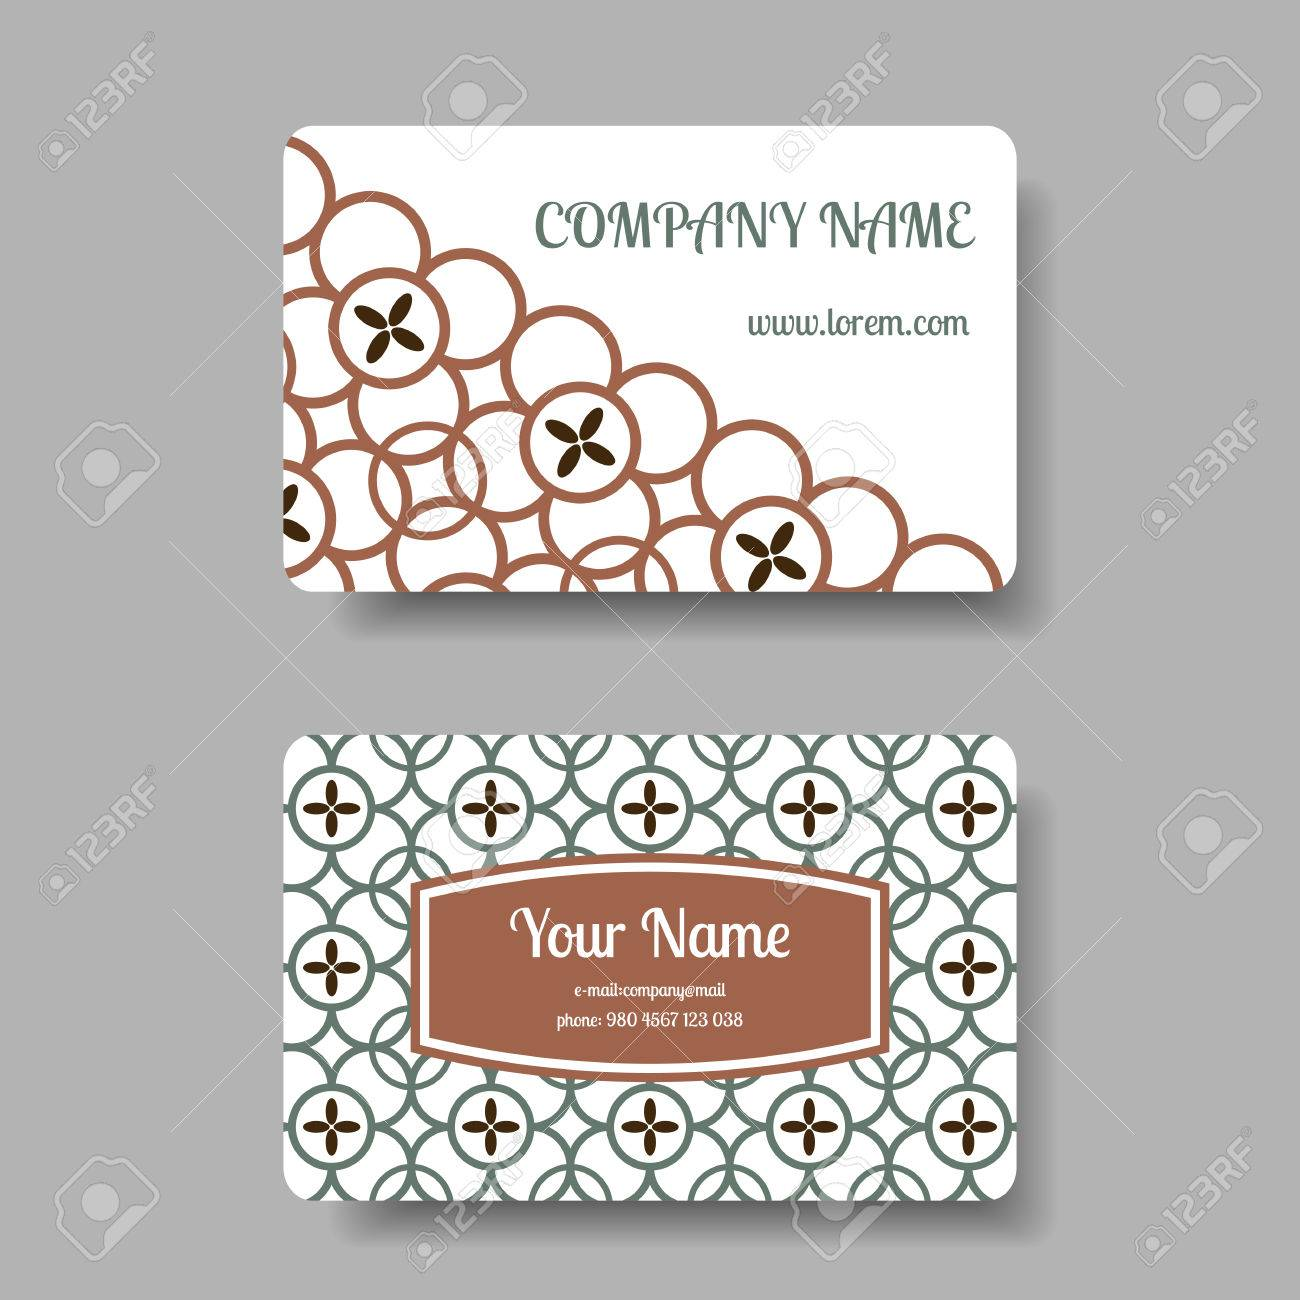 Vintage Business Card Collection With Chinese Ornament. Vector ...